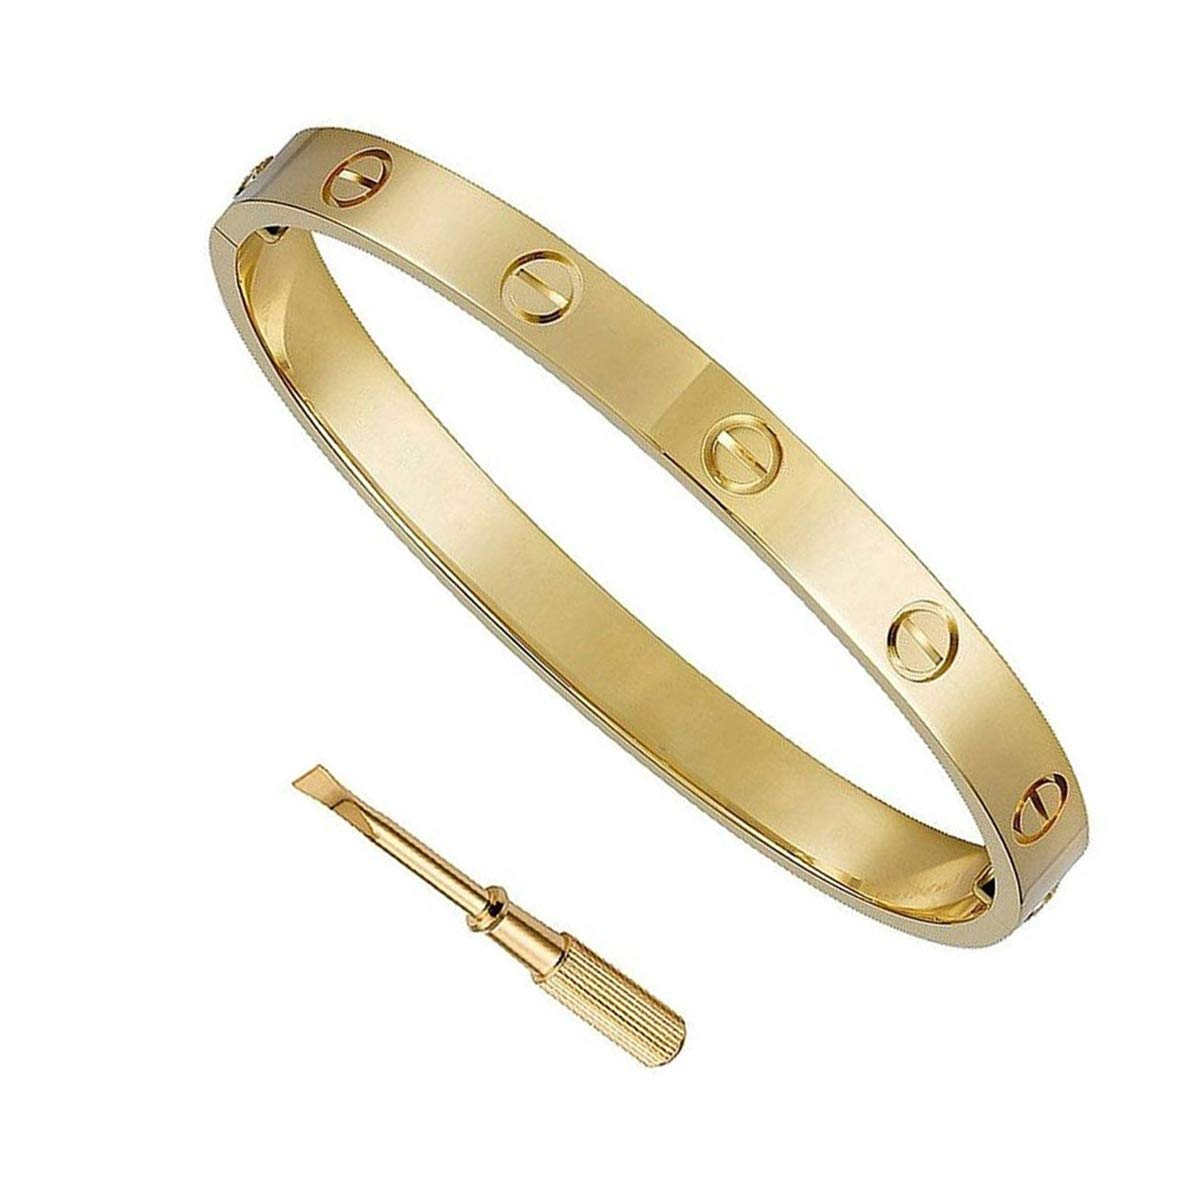 O-HIILILI Womens Love Bracelet Stainless Steel Cuff Bangle Bracelet with Screwdriver 7.5Inch Gold